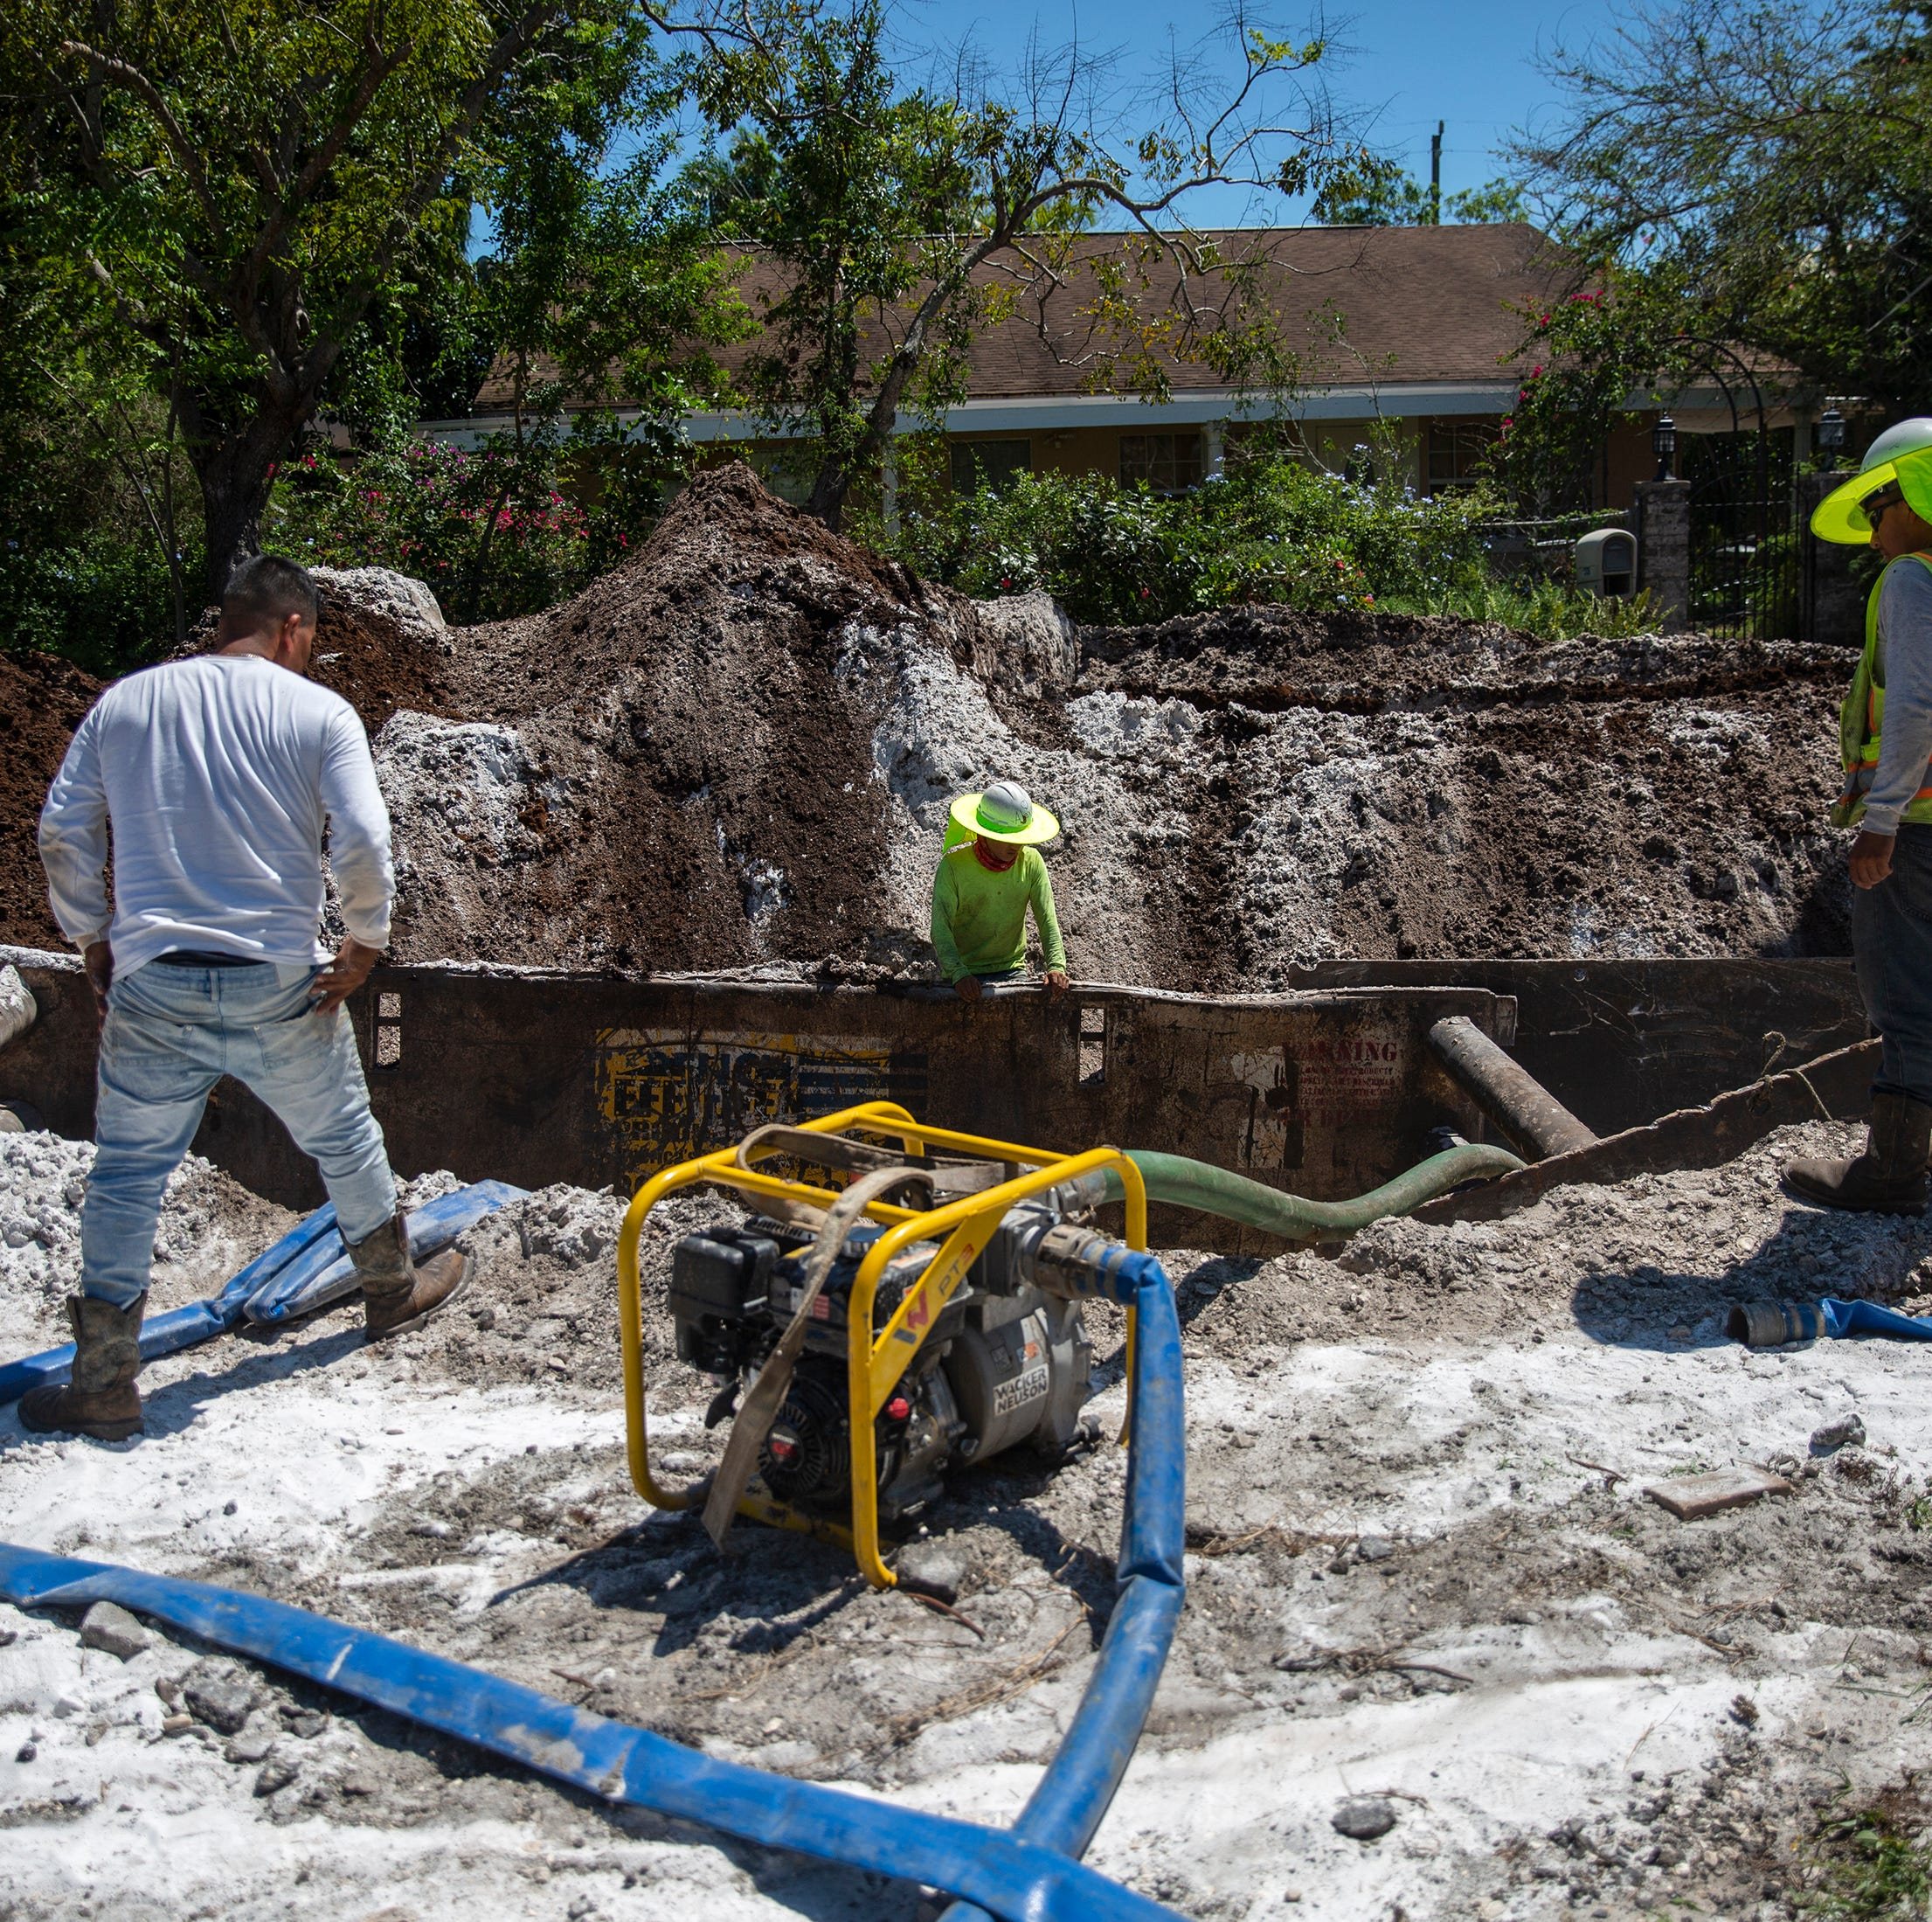 Residents say Naples' septic tank replacement project has been poorly managed, extremely disruptive